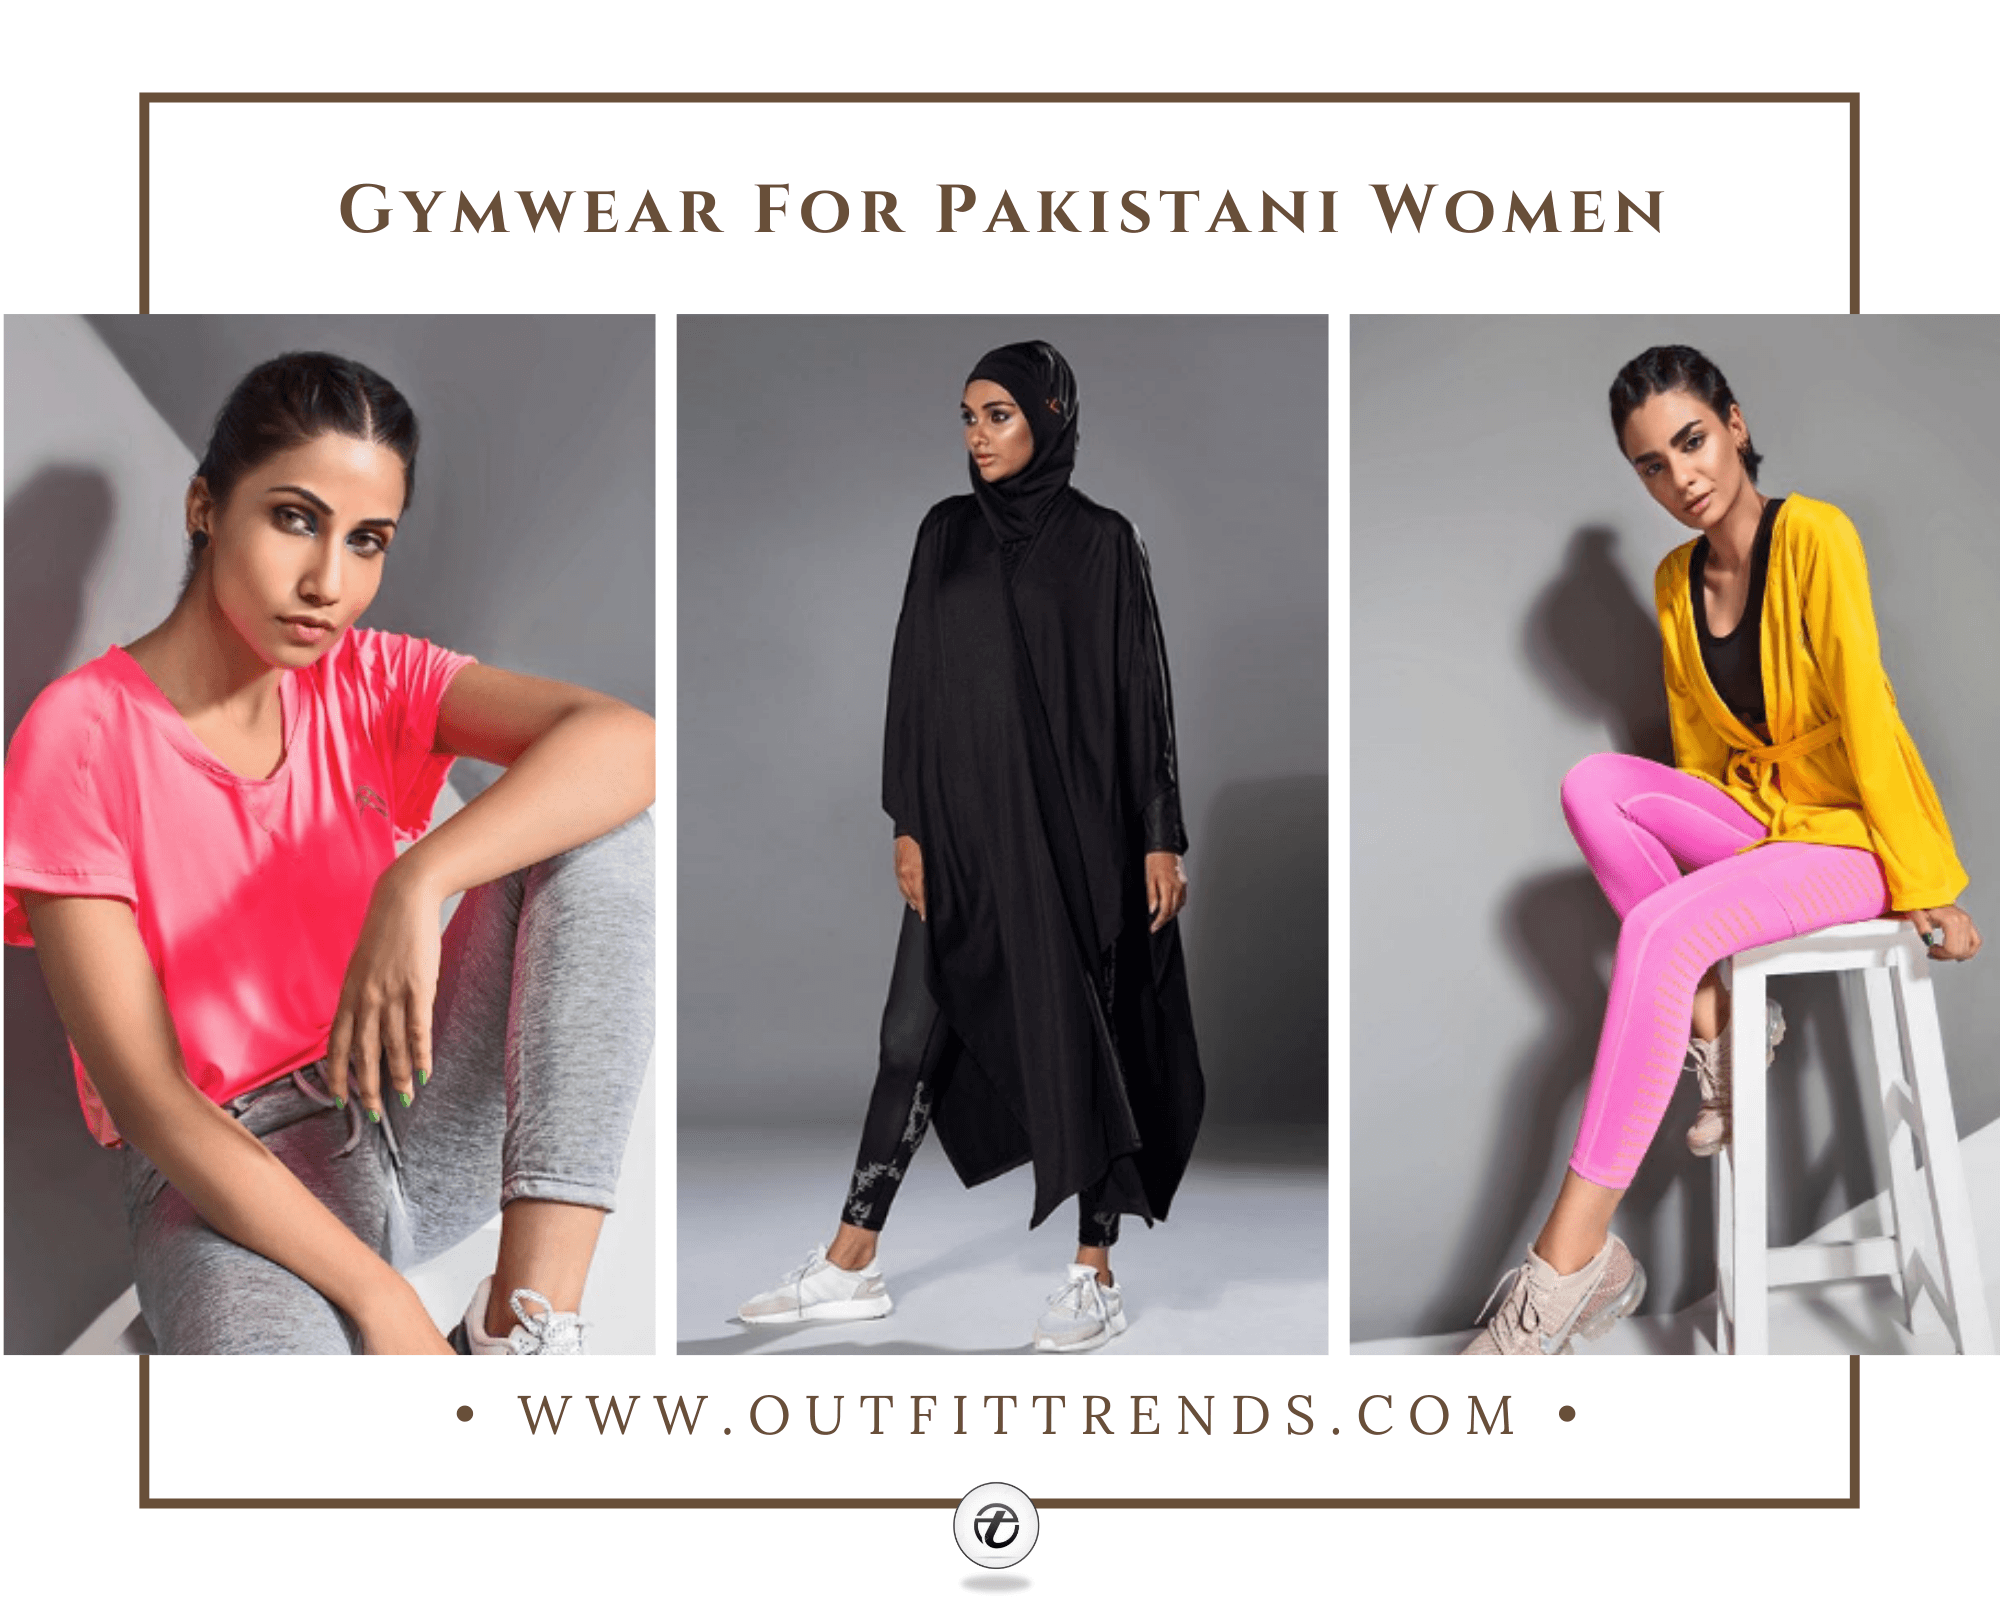 Sporty Outfits For Pakistani Girls – 30 Cool Gym Looks For Girls